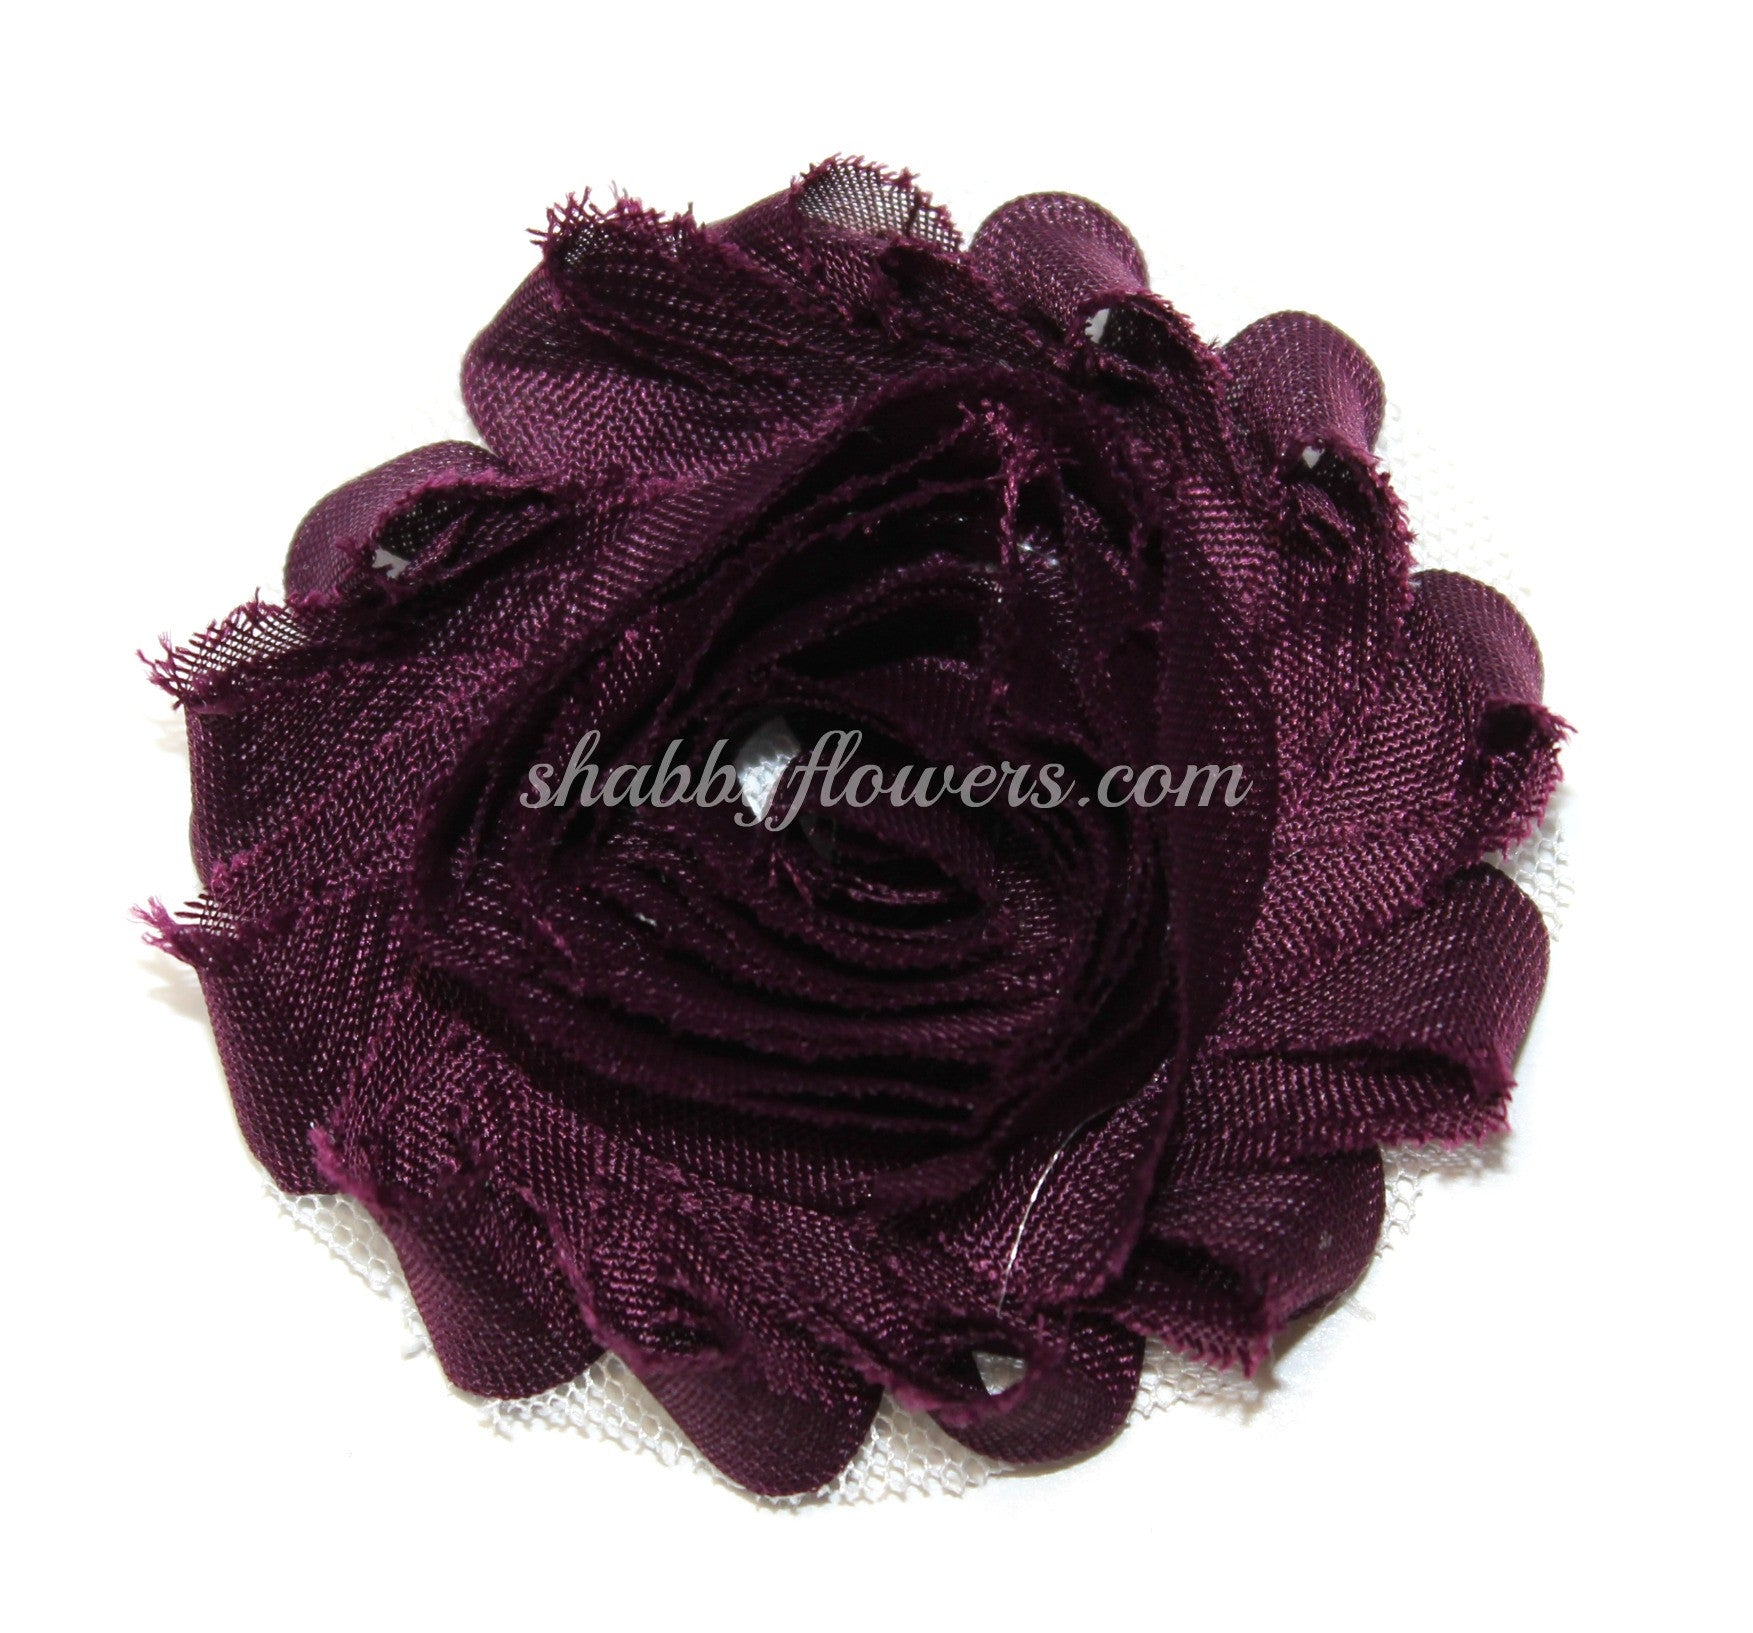 Shabby Flower - Plum - shabbyflowers.com